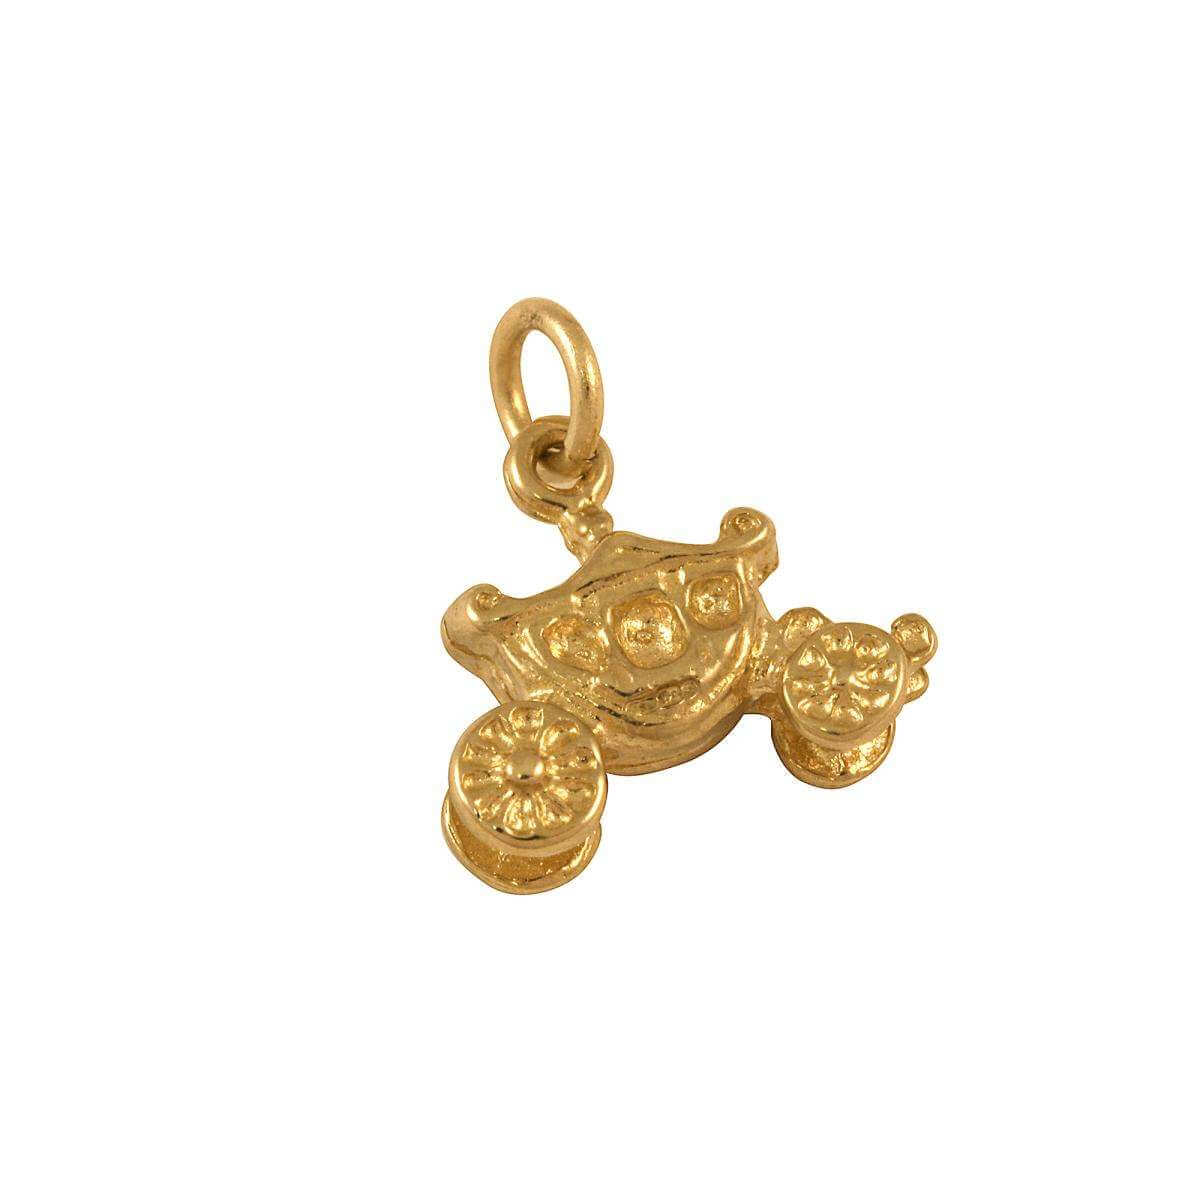 9ct Gold Carriage Charm